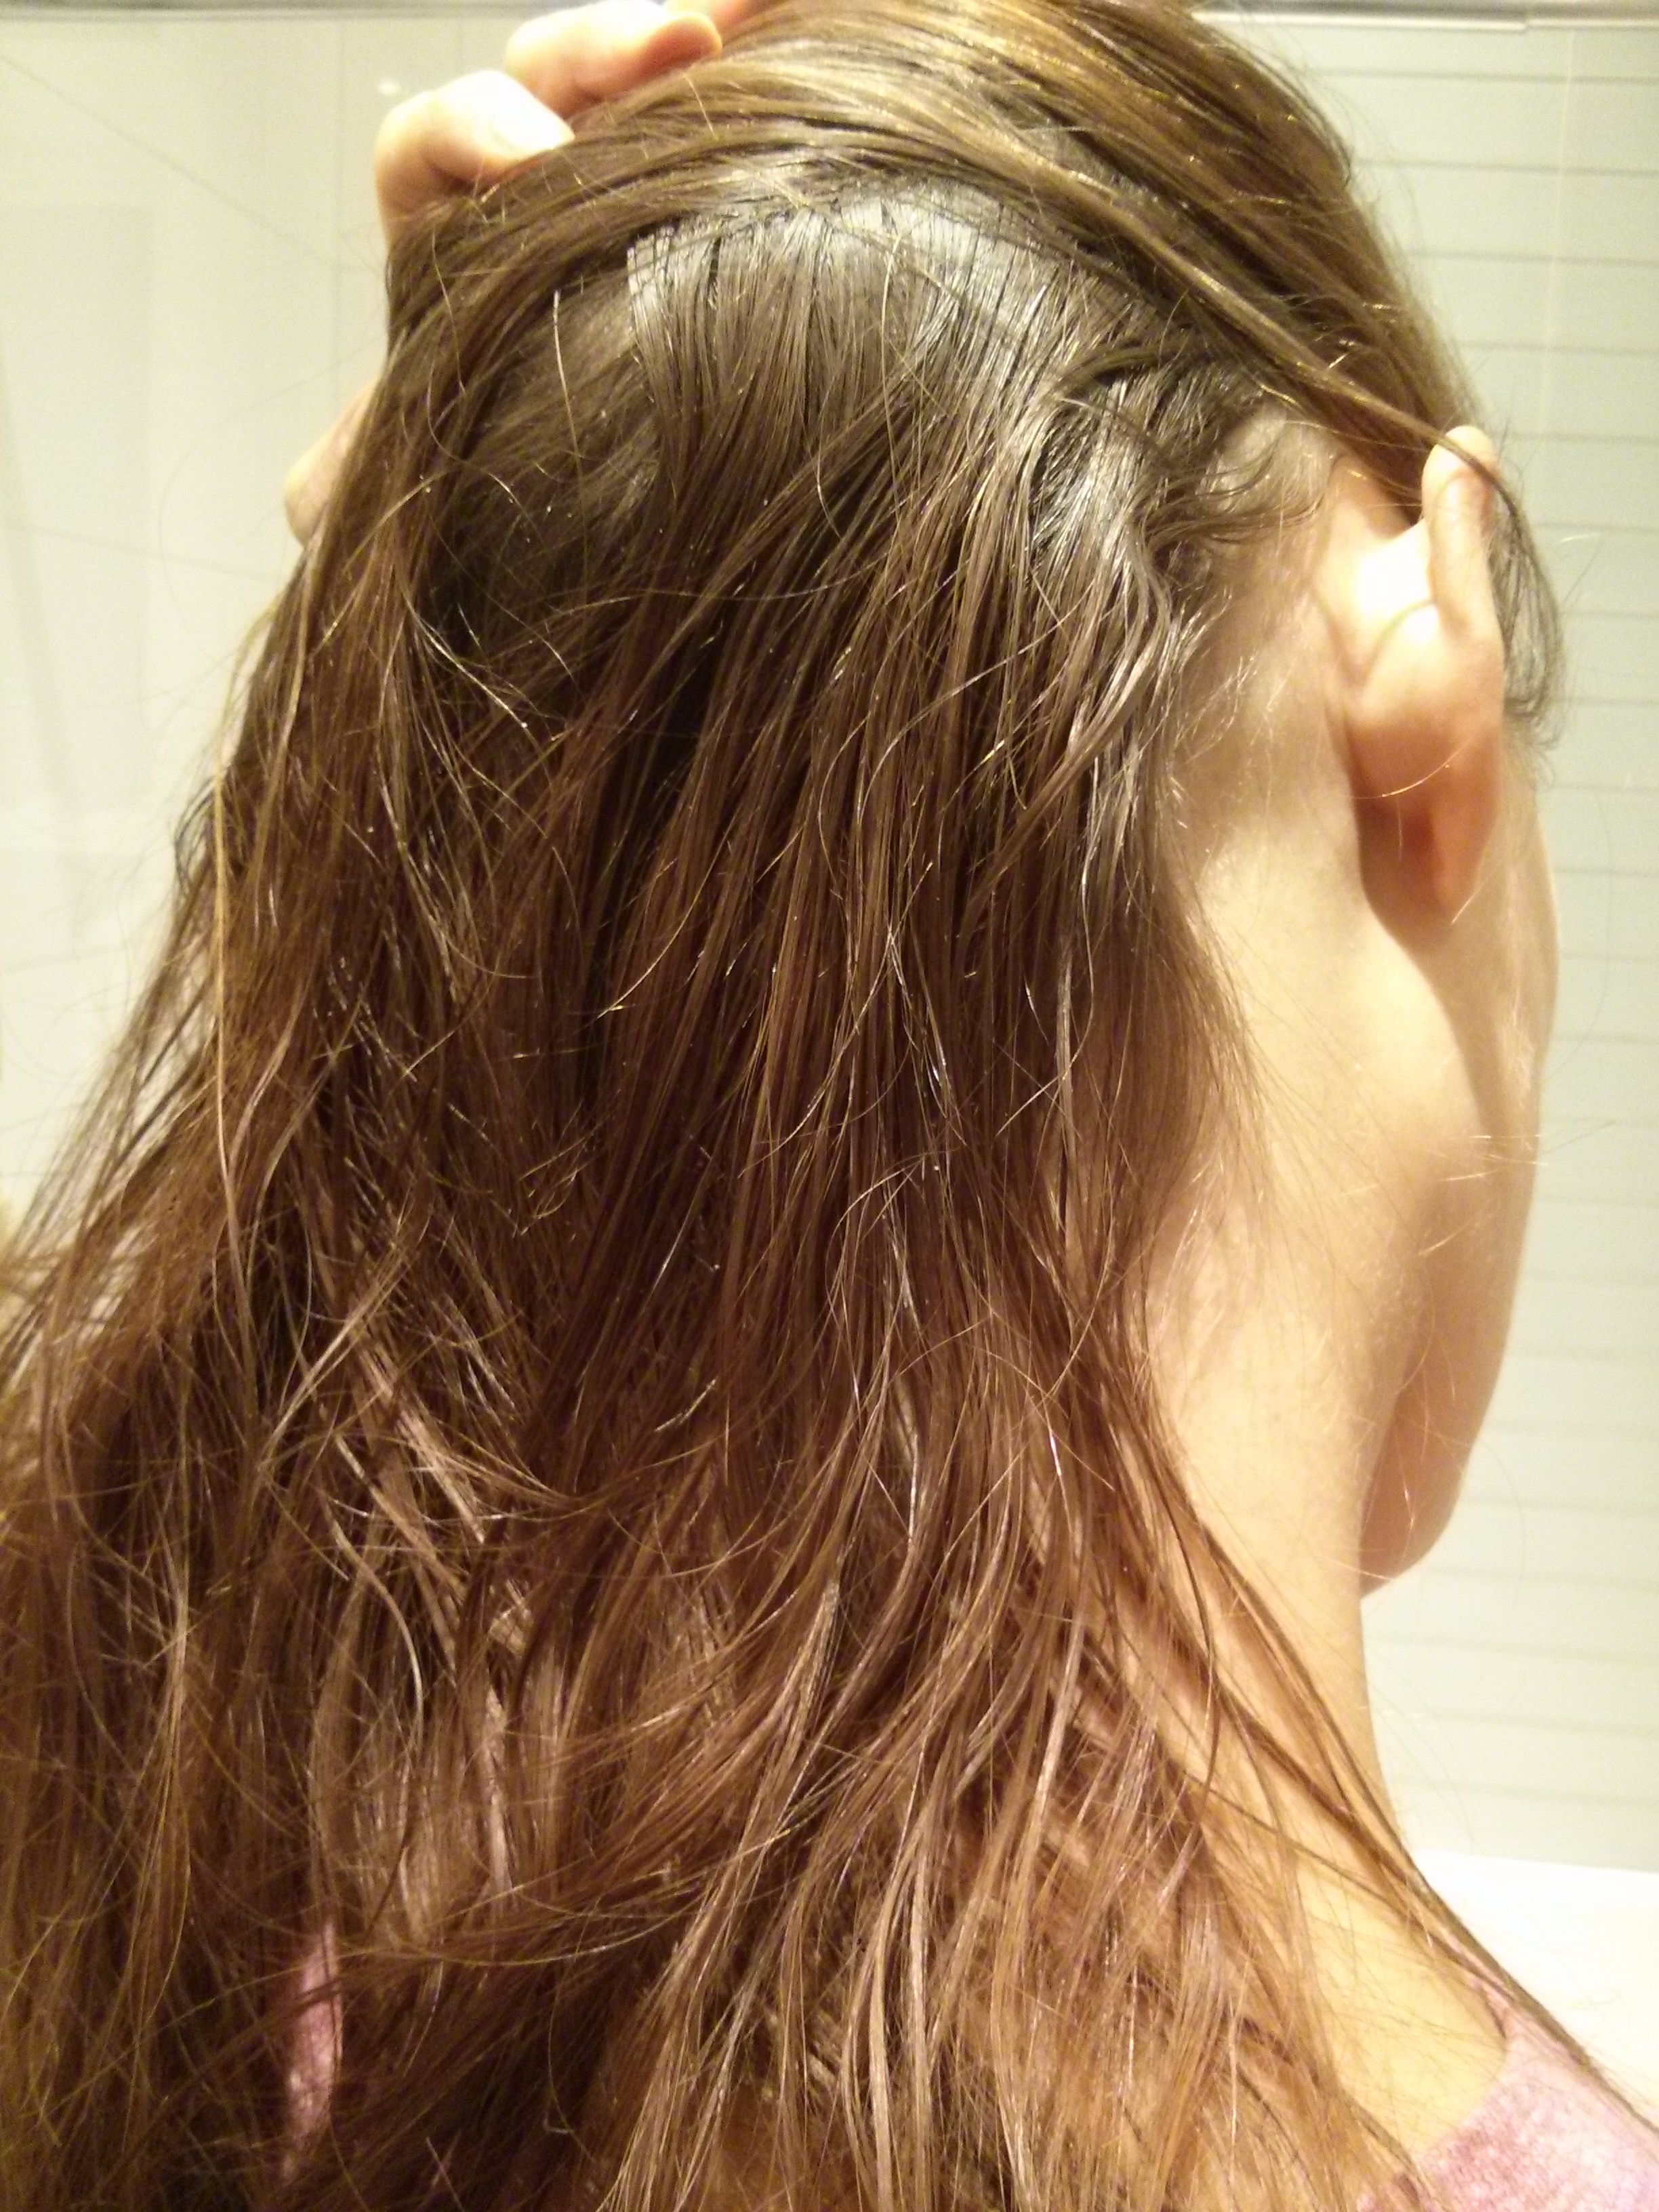 Waxy Greasy Hair After Shower A Surprising Form Of Dermatitis Greasy Hair Hairstyles Greasy Hair Remedies Hair